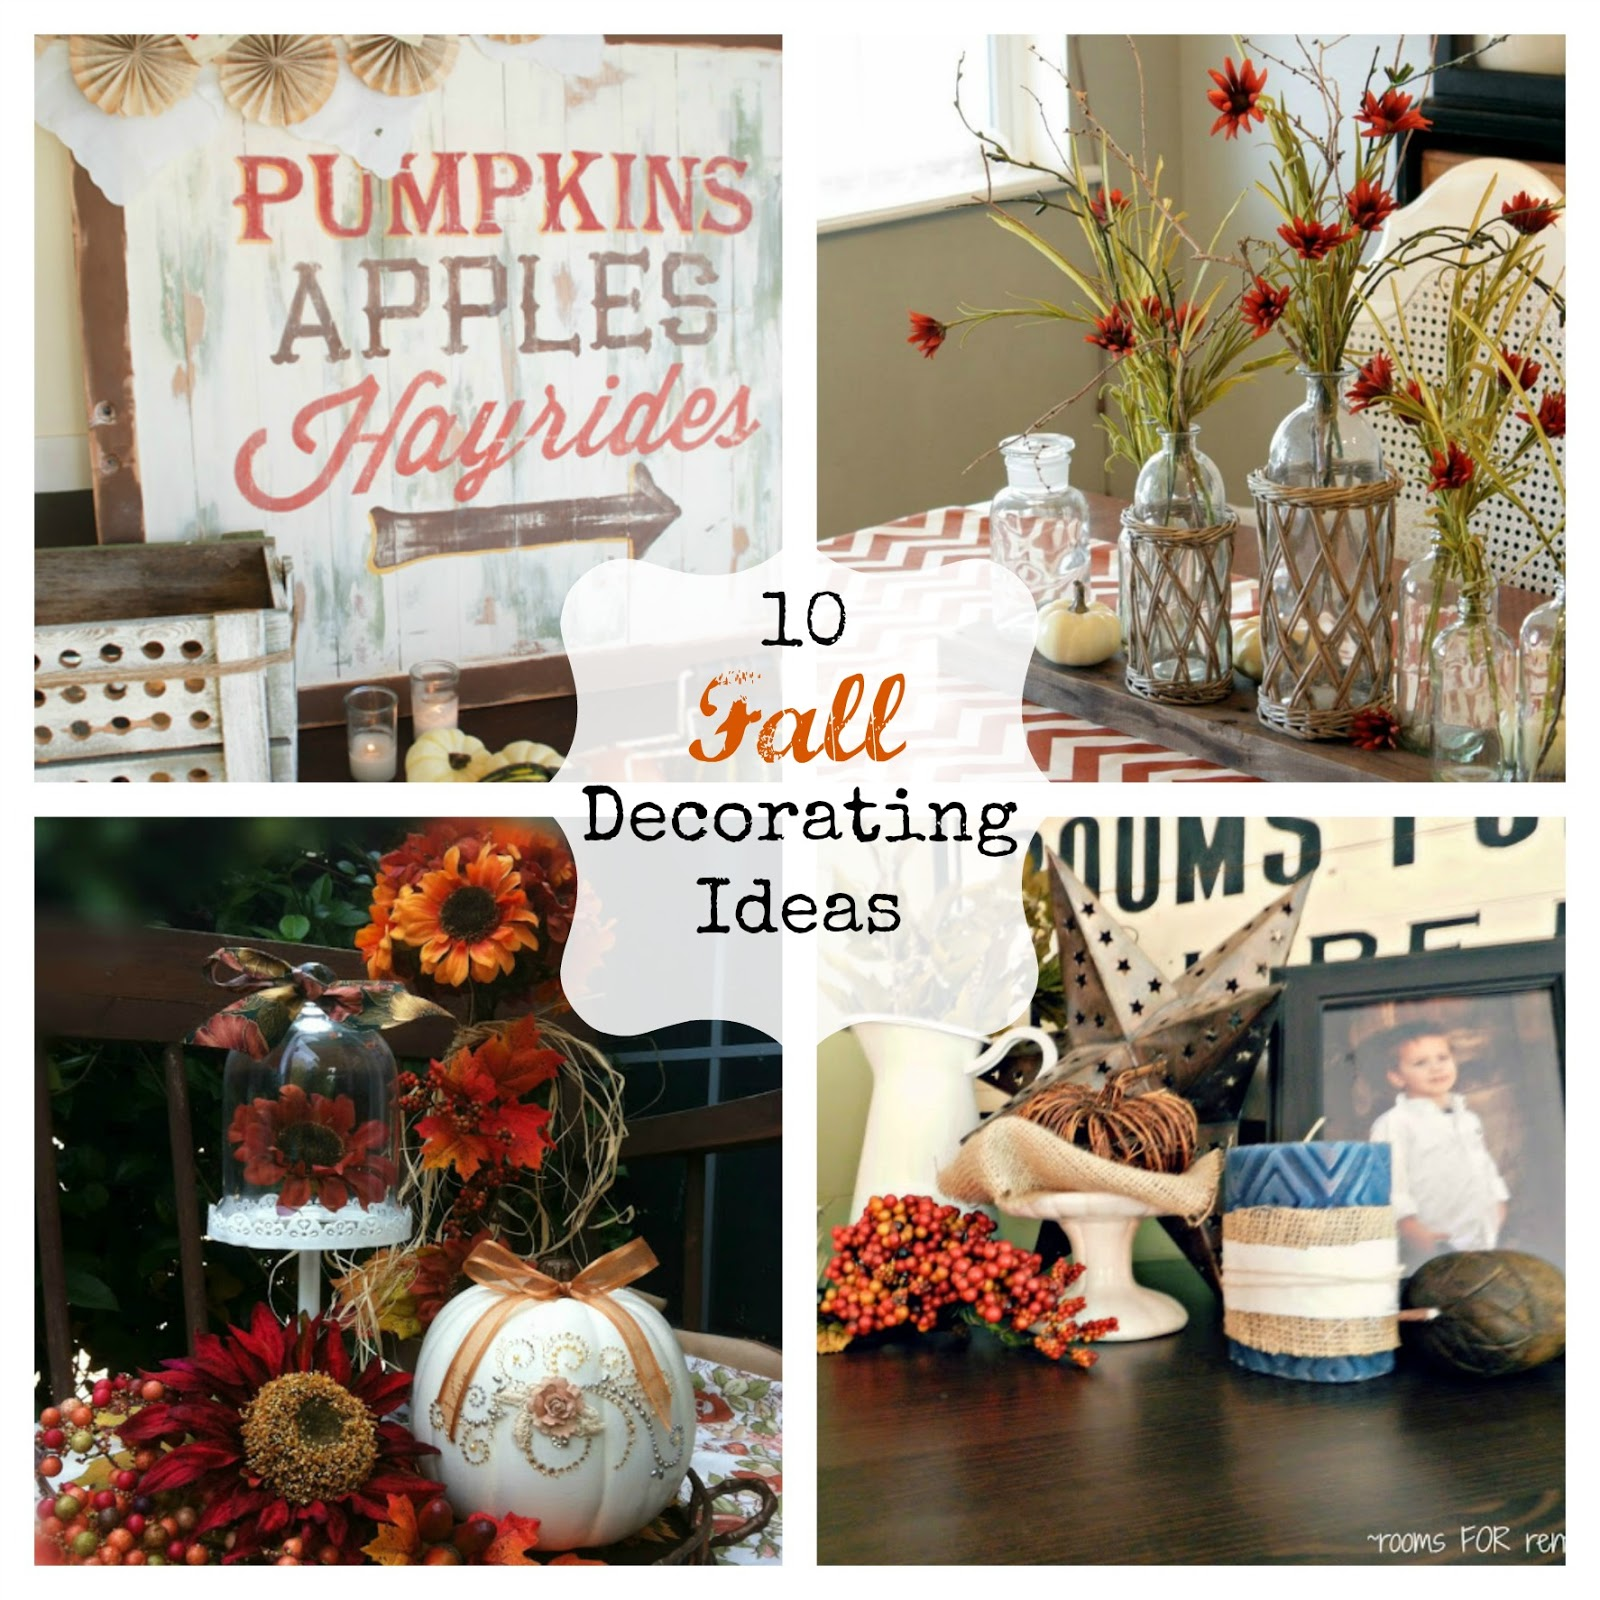 Fun Home Things: 10 Fall Decorating Ideas